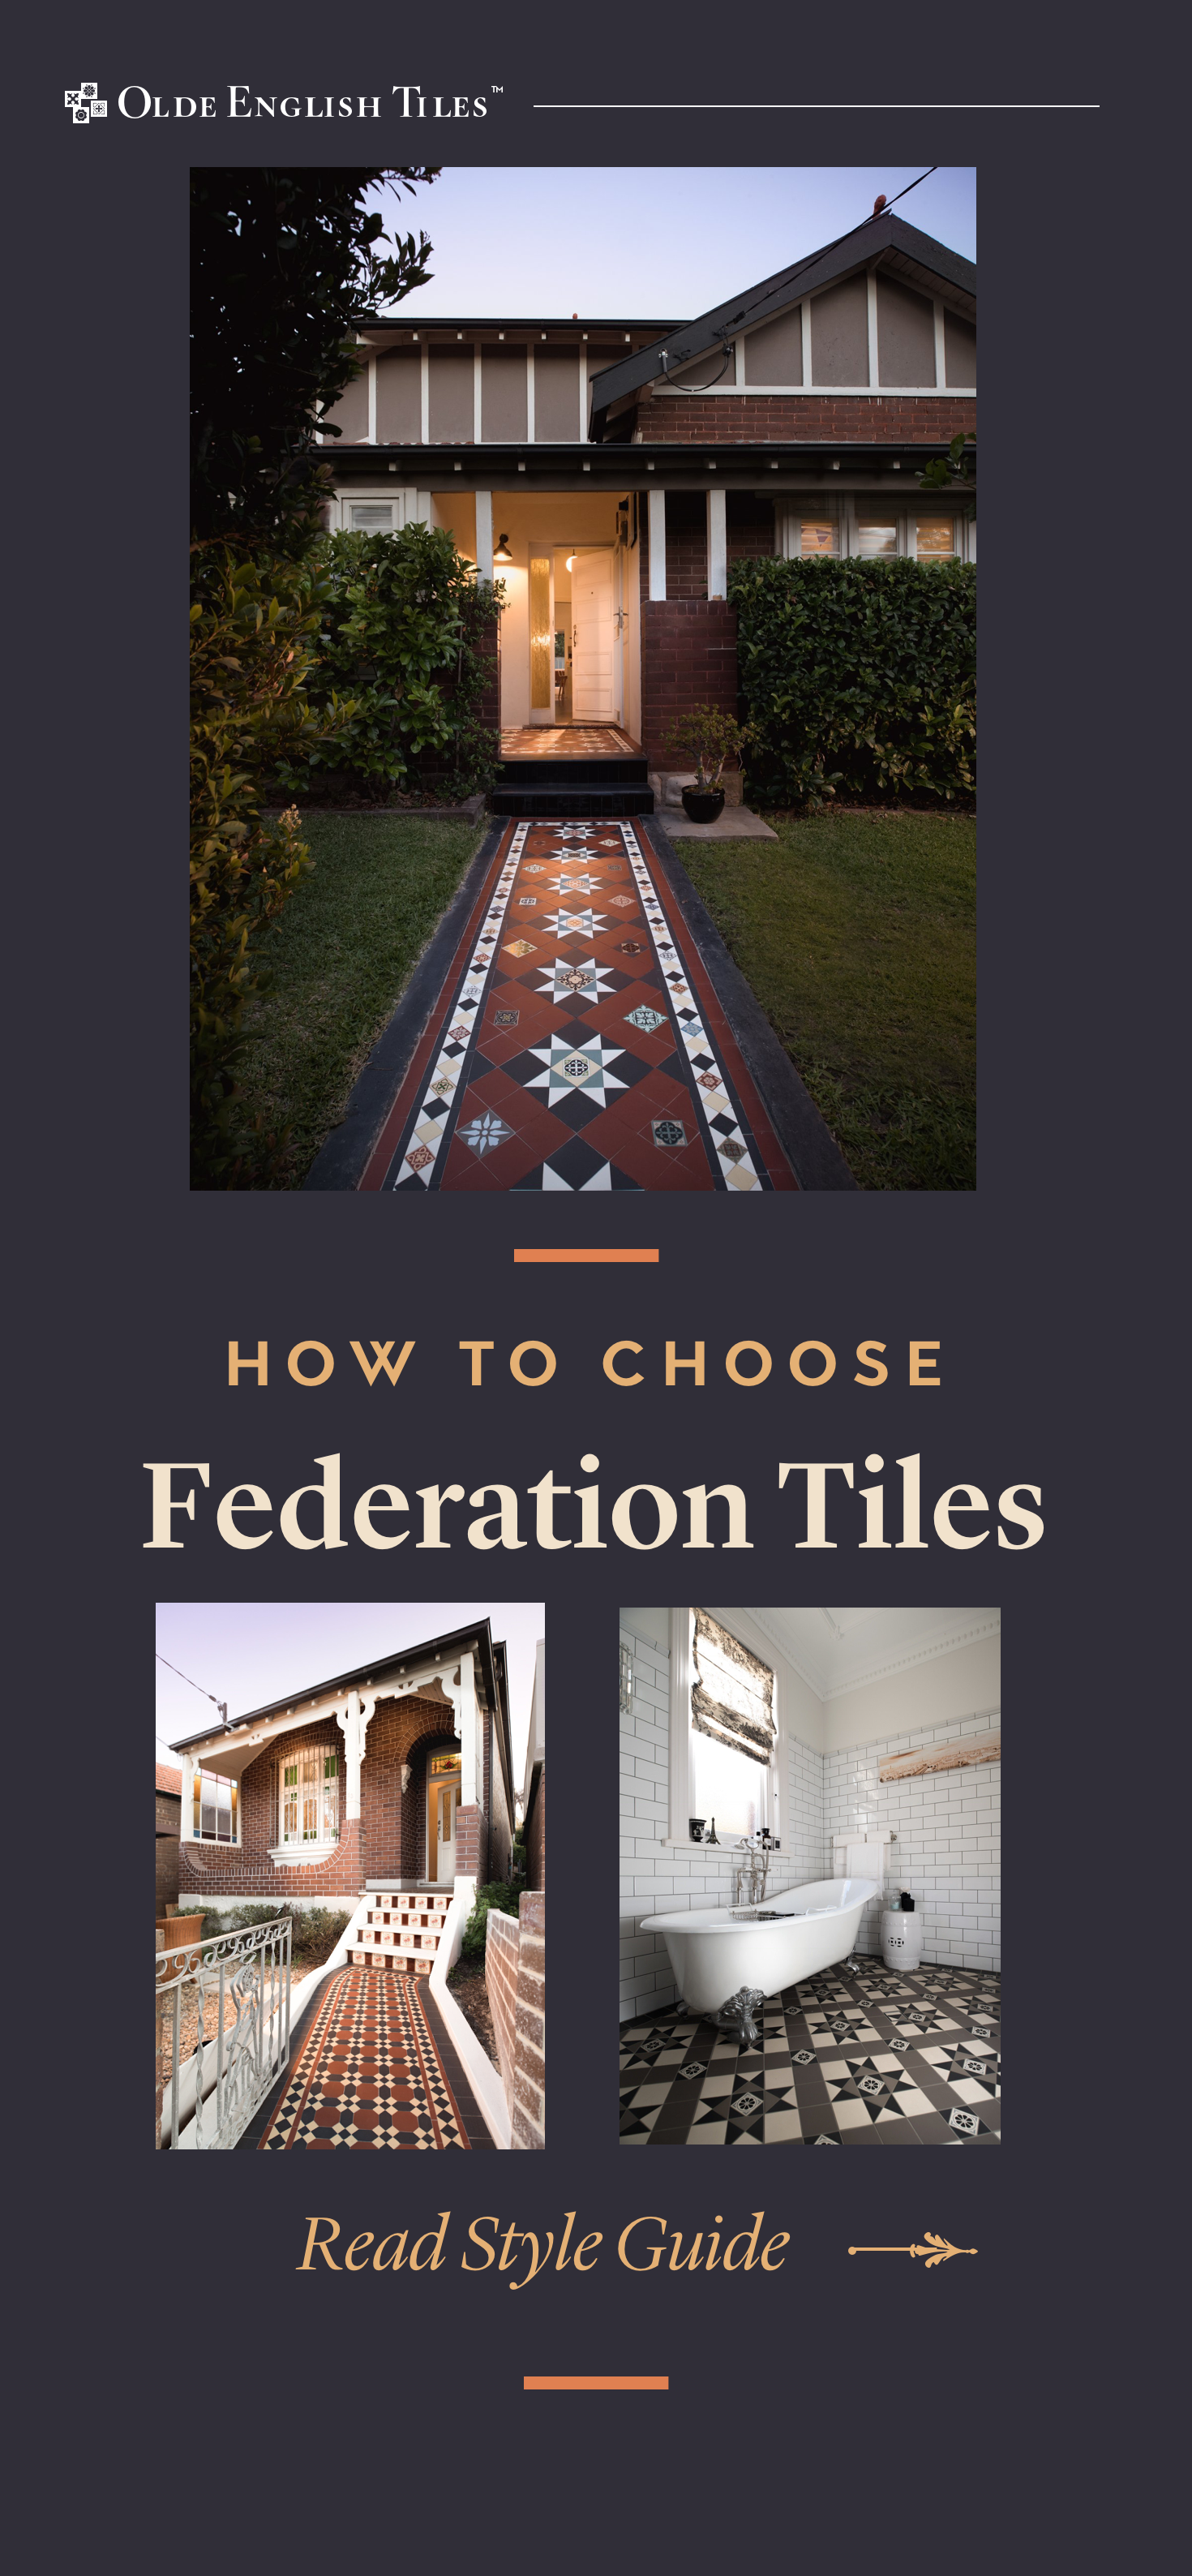 Federation Tiles A How To Guide Exterior house doors